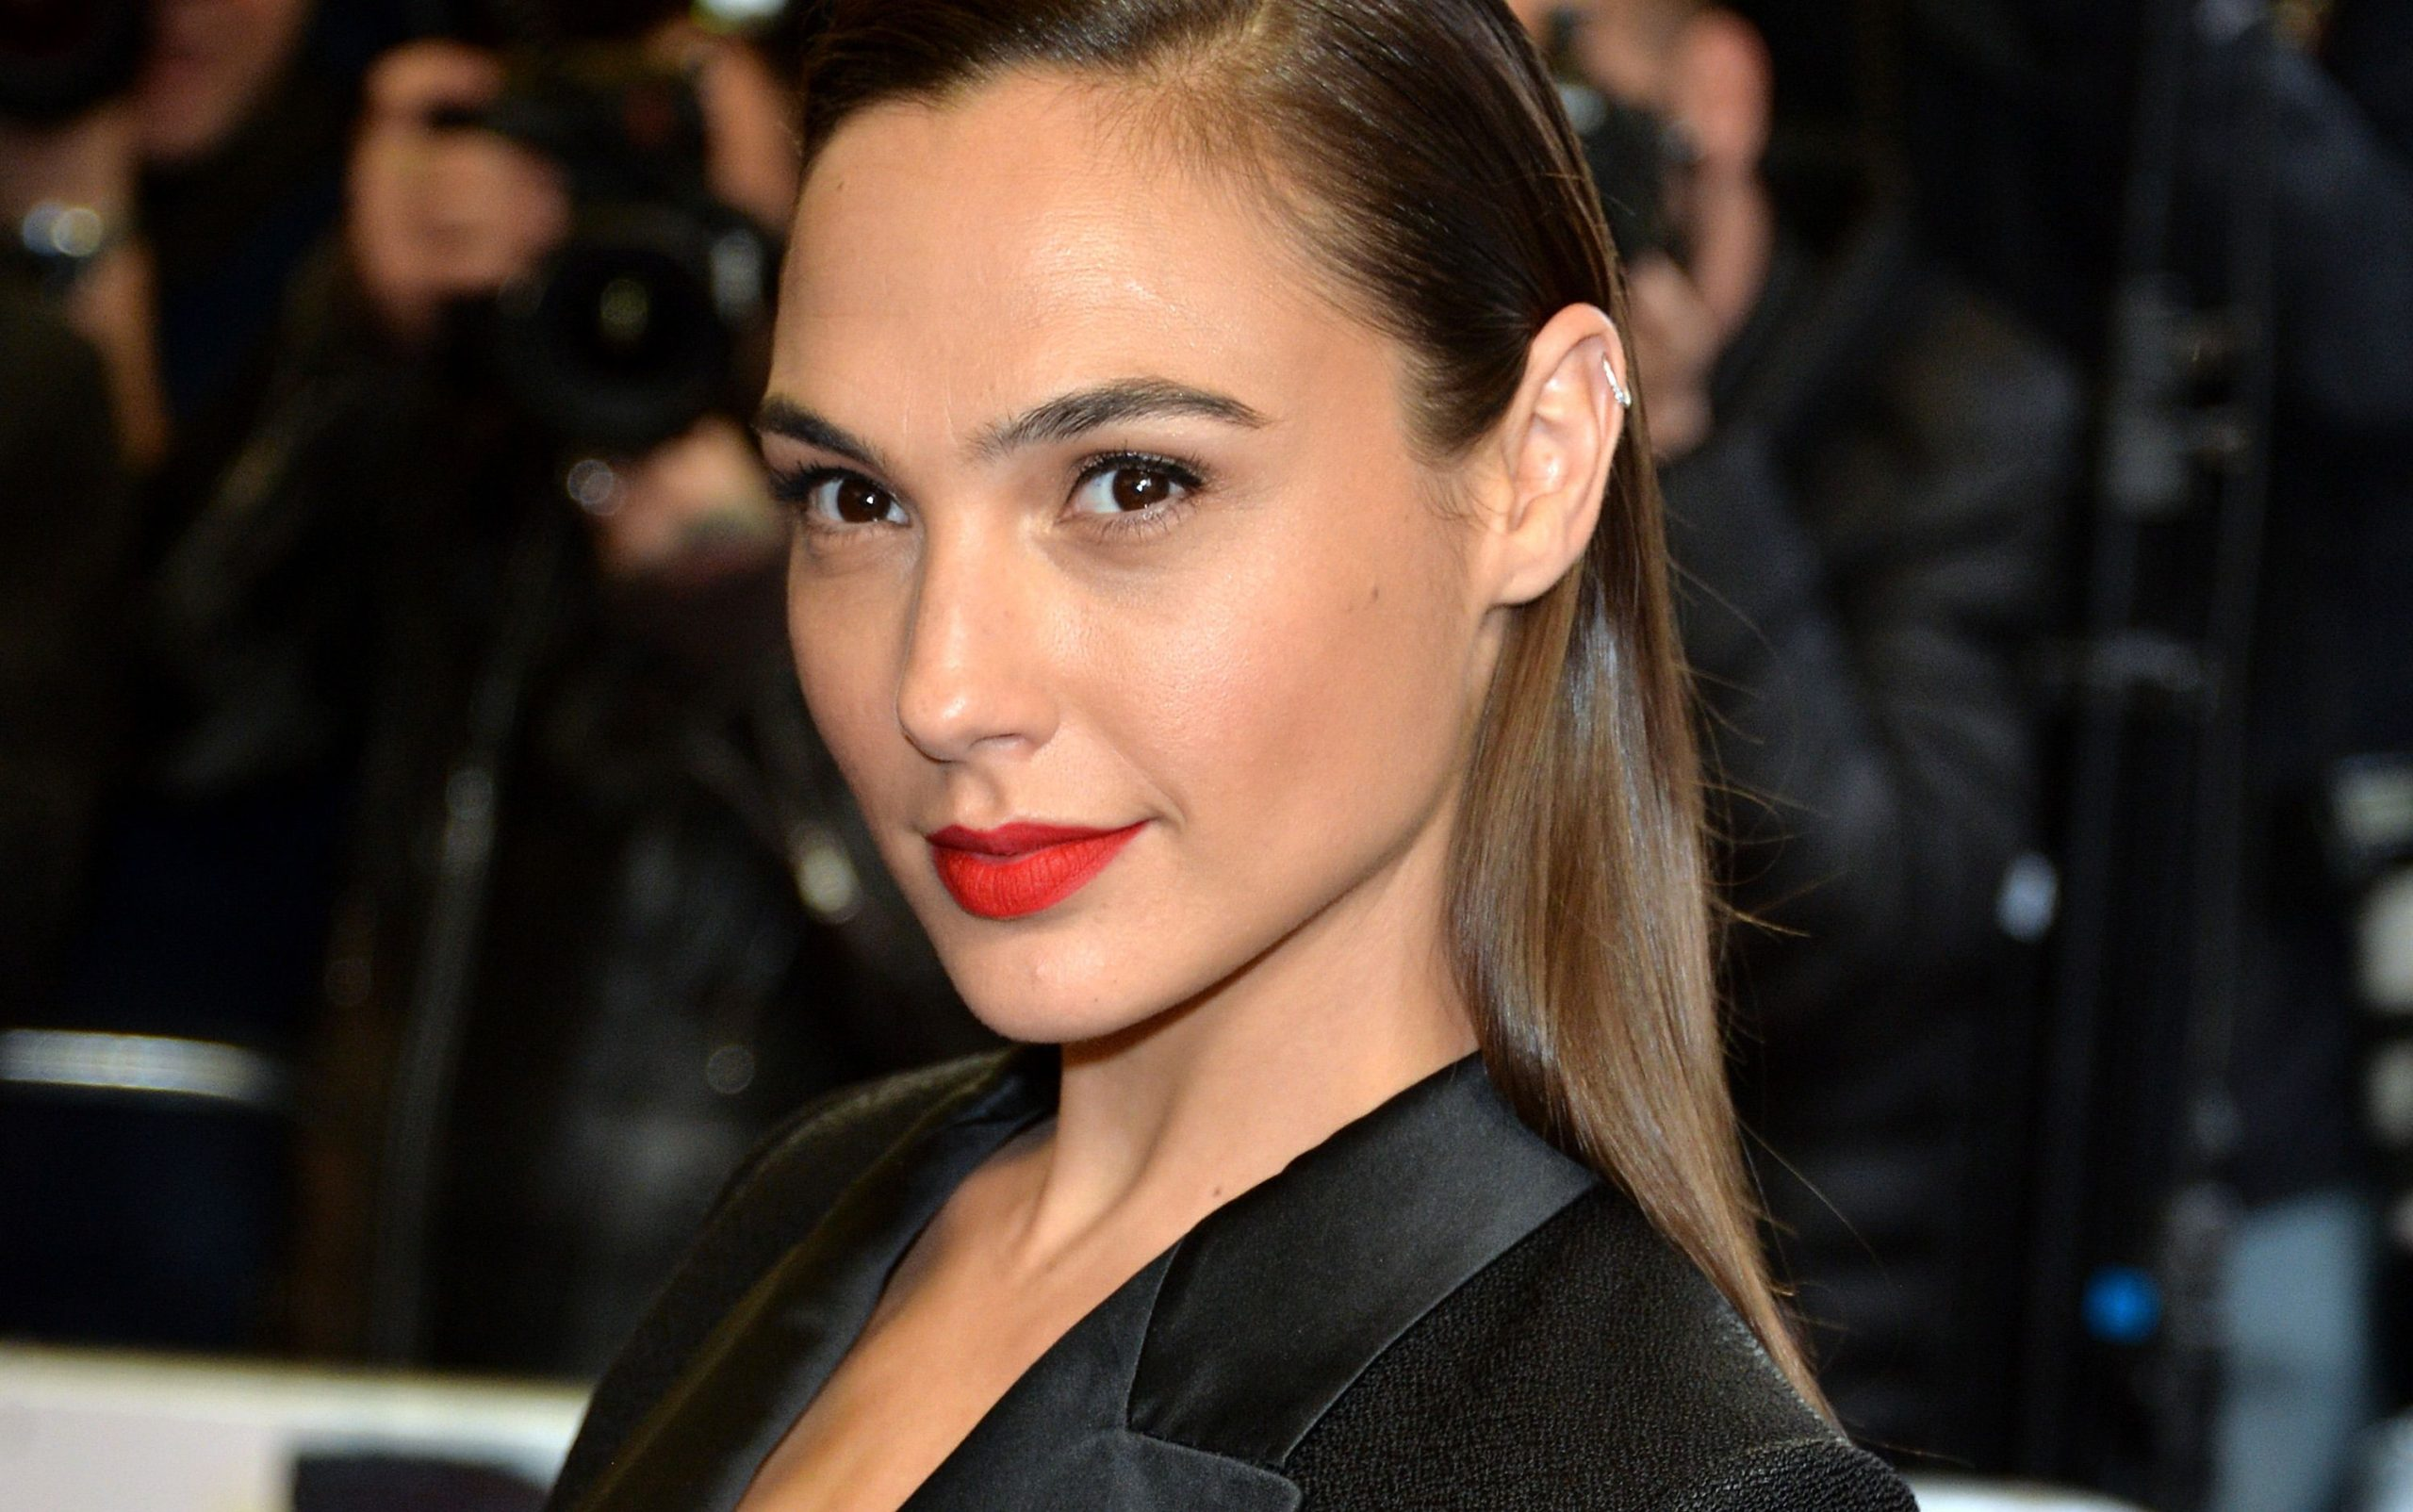 Gal Gadot Archives scaled - Gal Gadot Net Worth, Pics, Wallpapers, Career and Biography